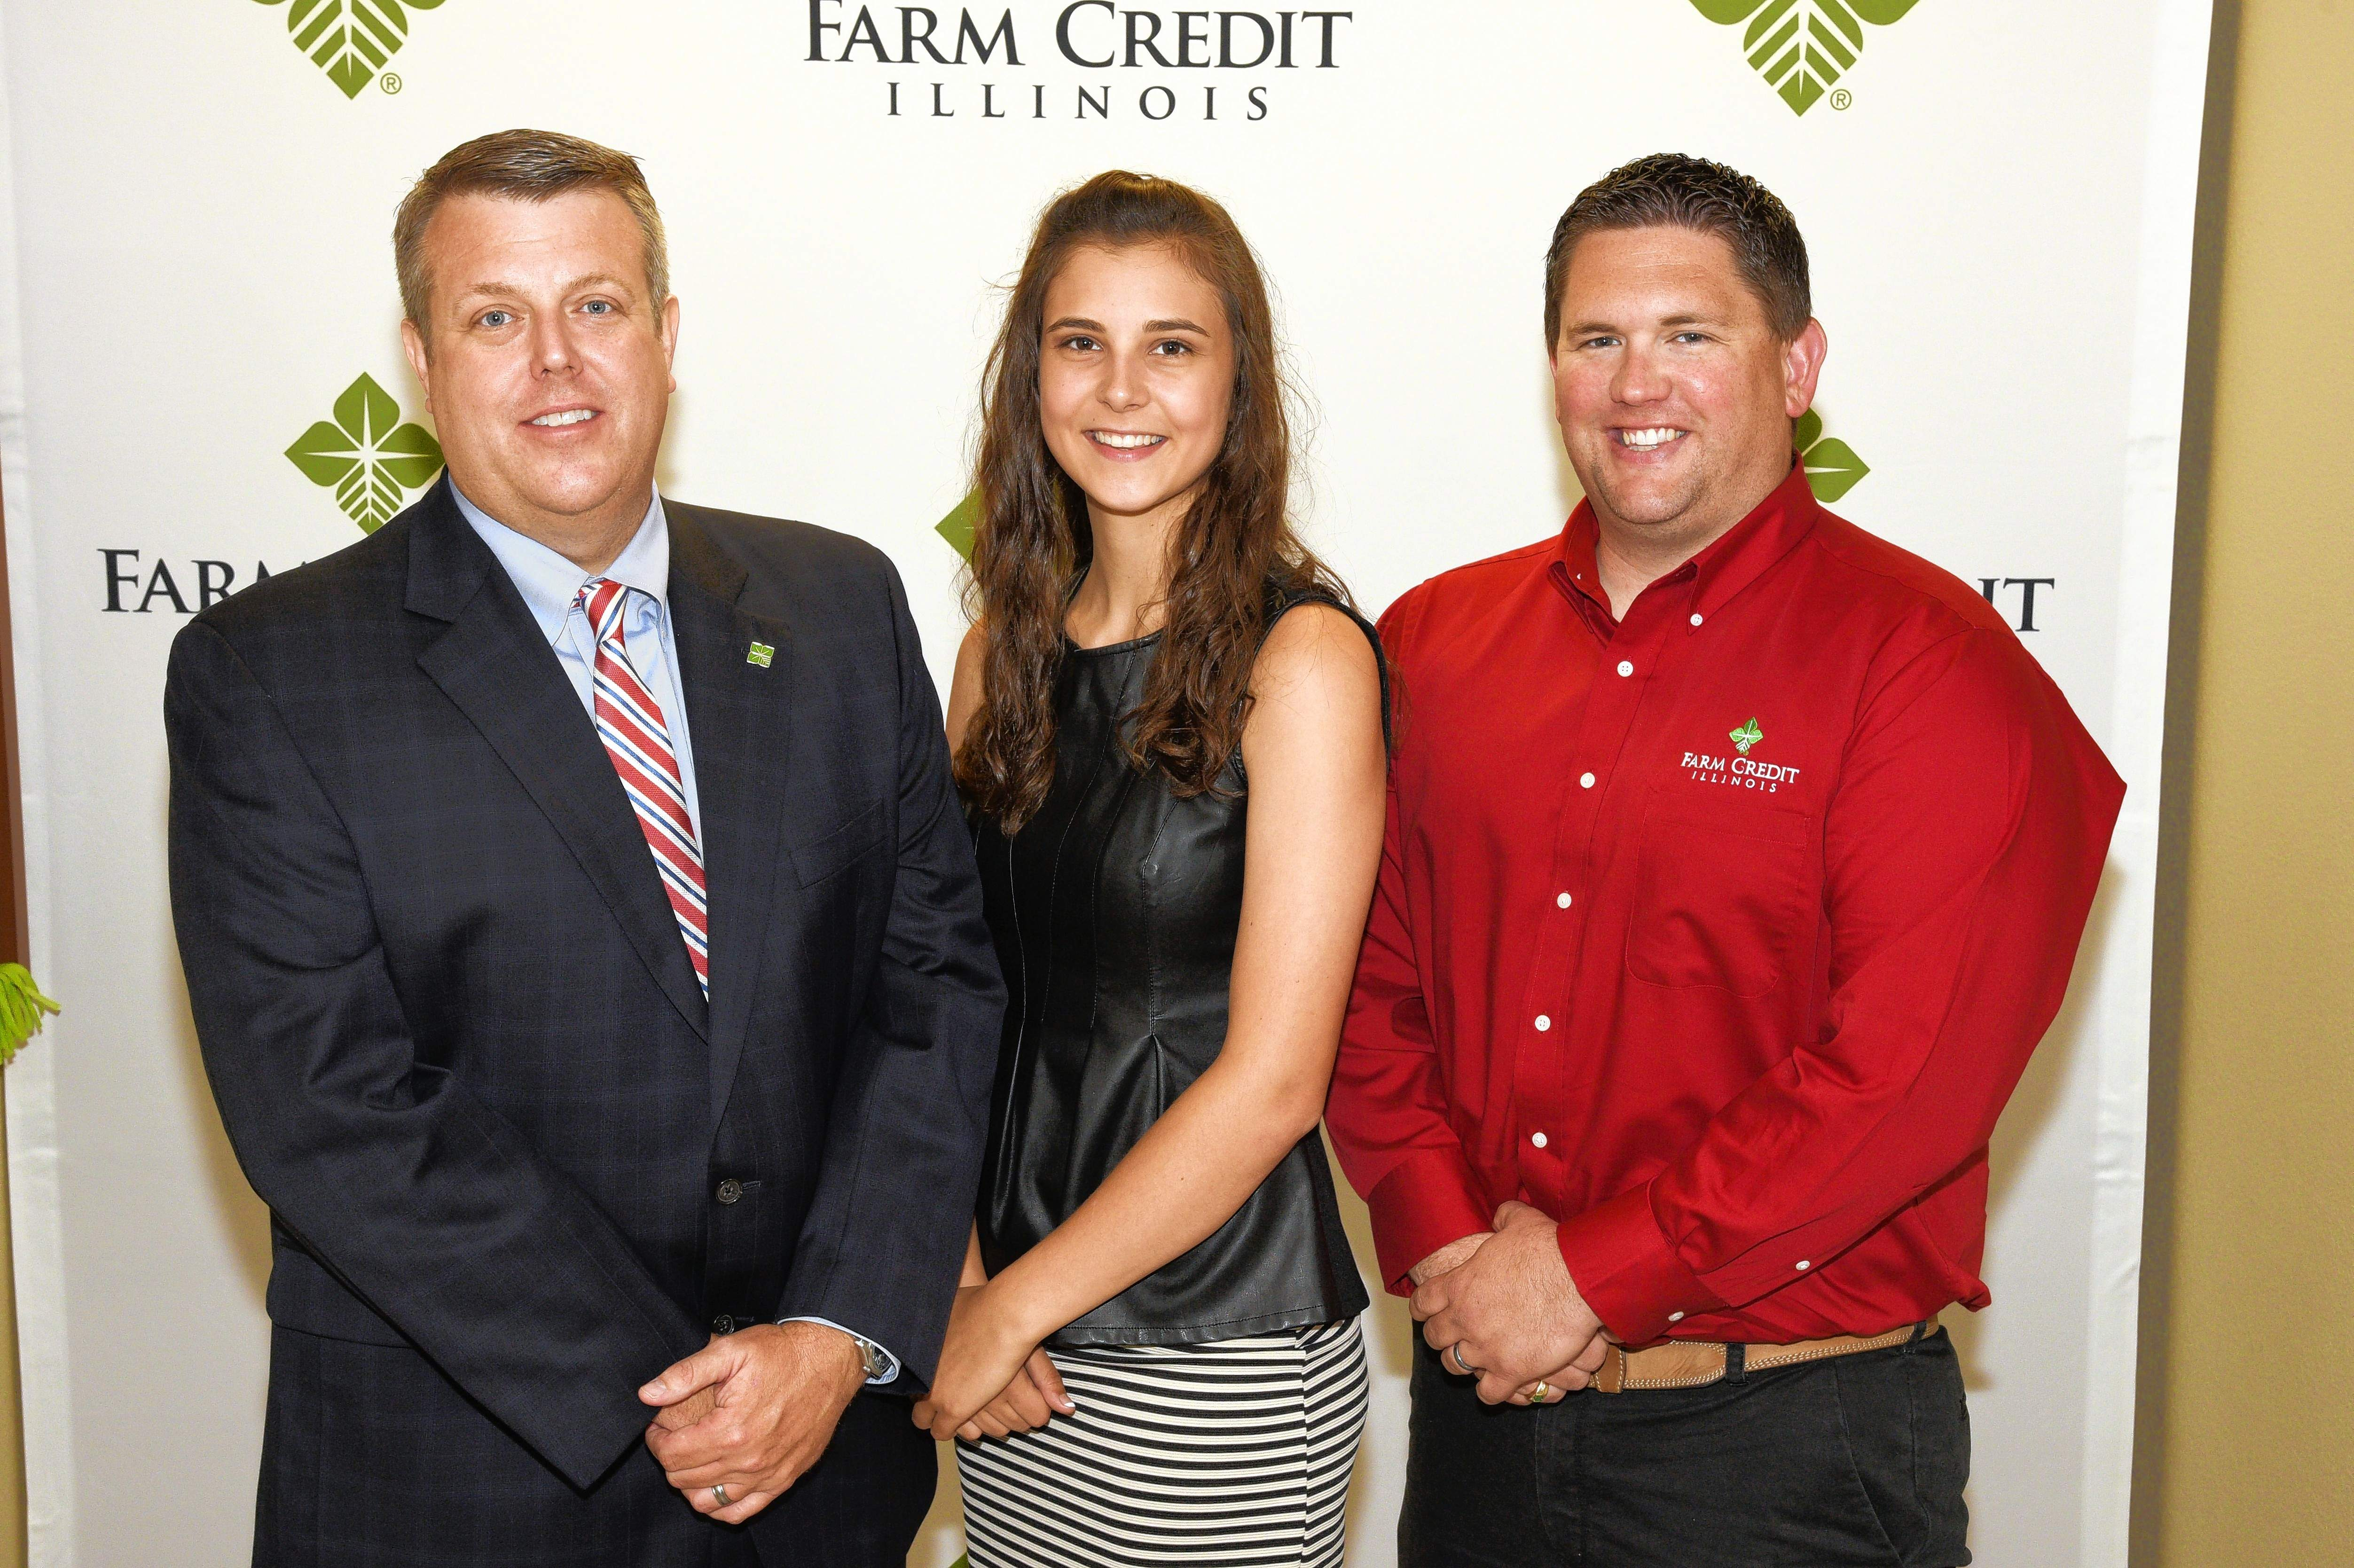 From left, Tom Tracy, Farm Credit Illinois president and CEO, Bridget Payne and Bret Green, FCI Marion regional manager.